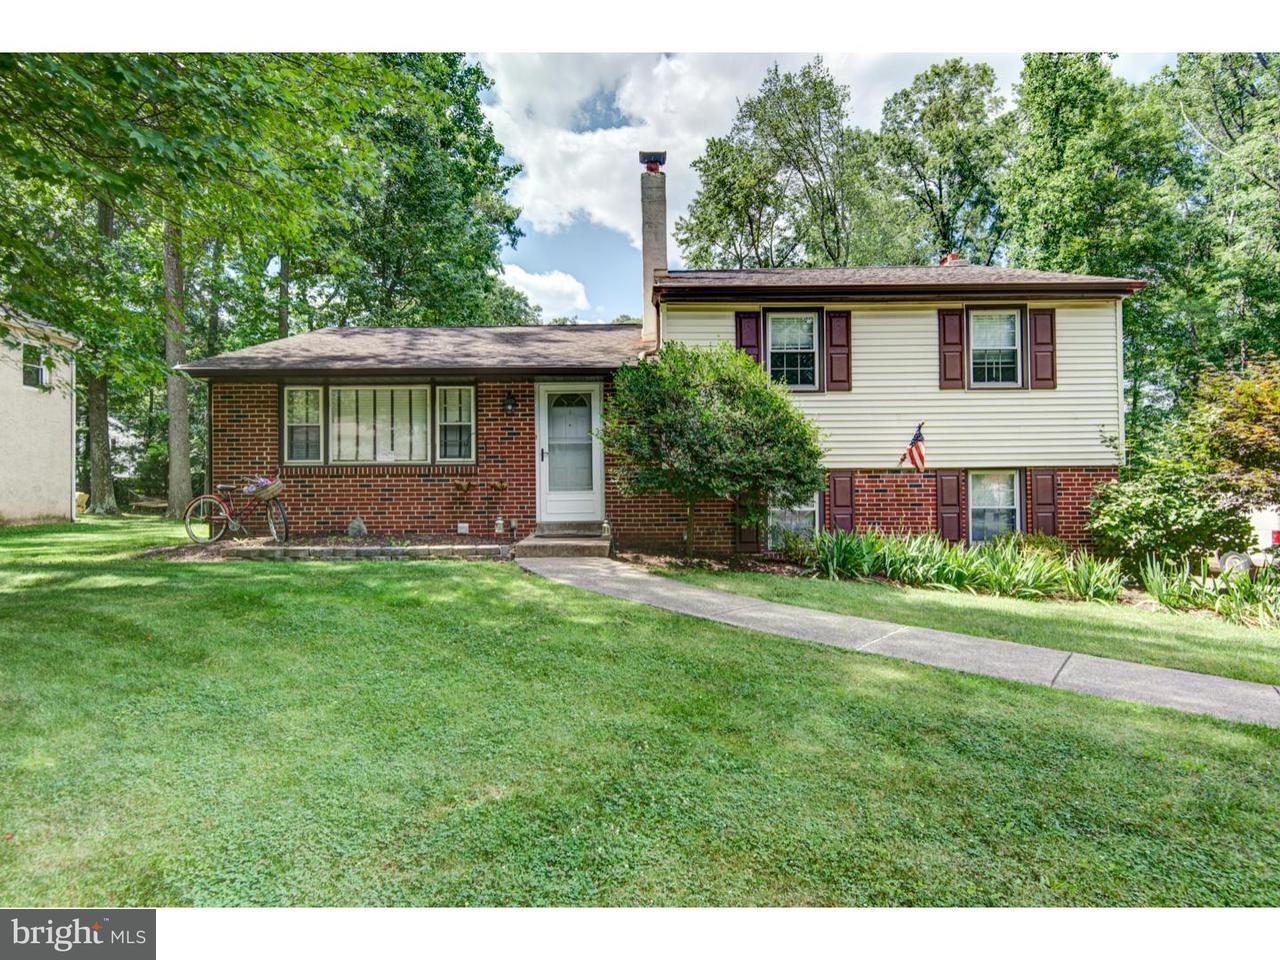 Single Family Home for Sale at 171 DEER RUN Road Willow Grove, Pennsylvania 19090 United States